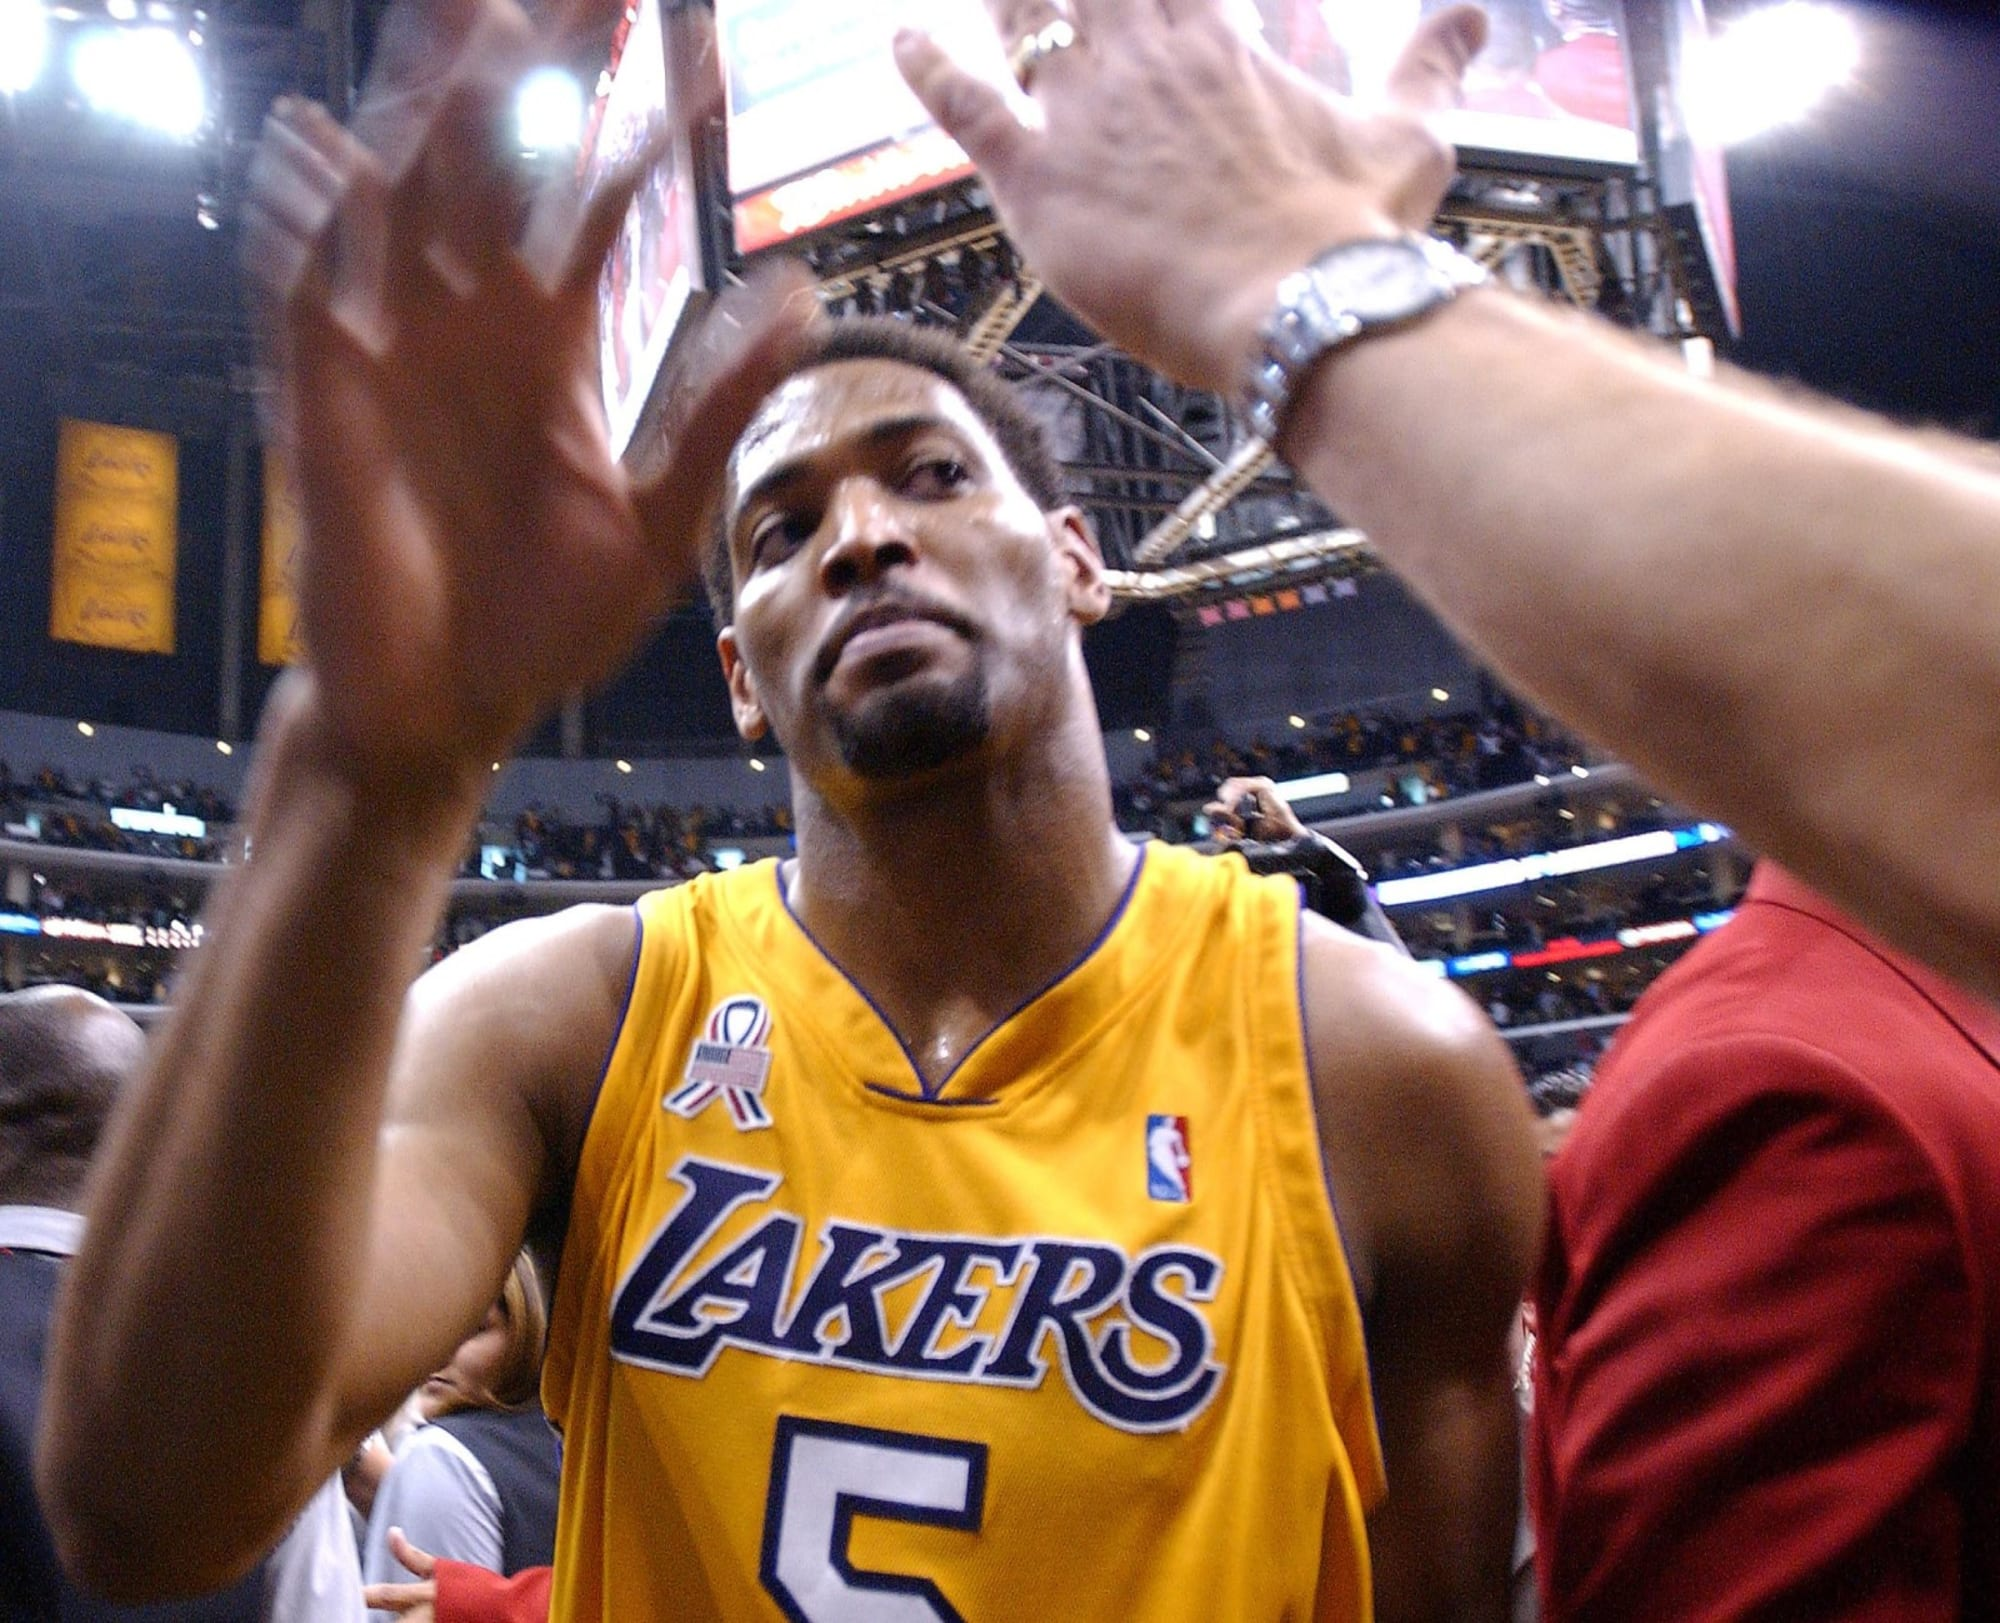 No, Robert Horry doesn't belong in the Basketball Hall of Fame